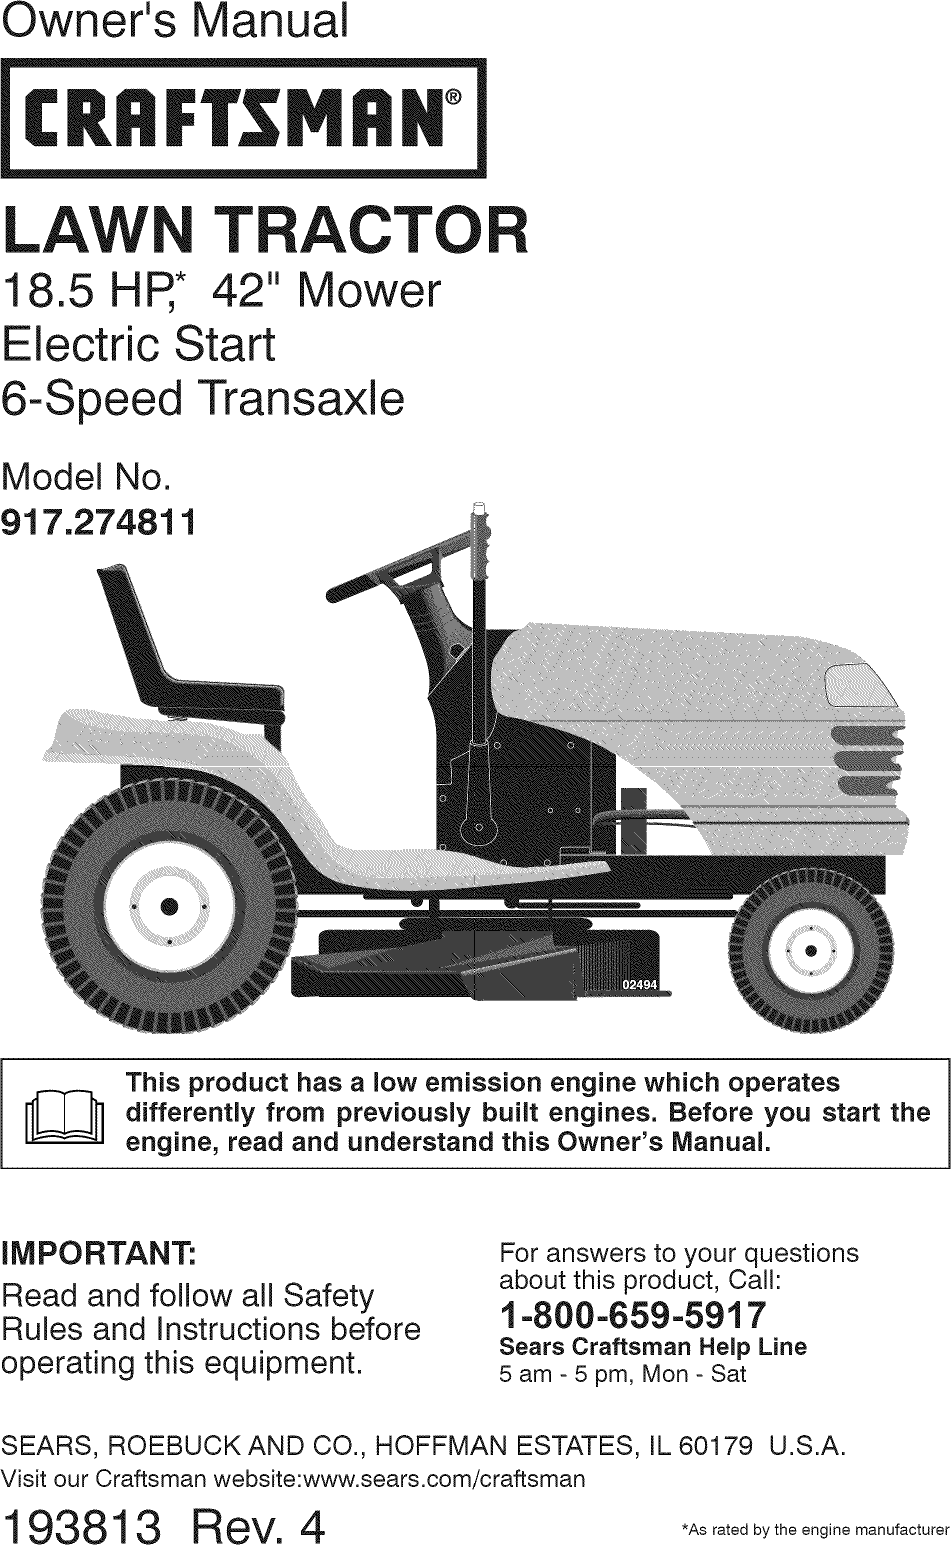 Craftsman 917274811 User Manual Tractor Manuals And Guides L0907040 Lawn Mower Electrical Schematics Owneraposs Manualcrrfrsmrmtracto42quot Mowerelectric Start6 Speed Transaxlemodel No917274811this